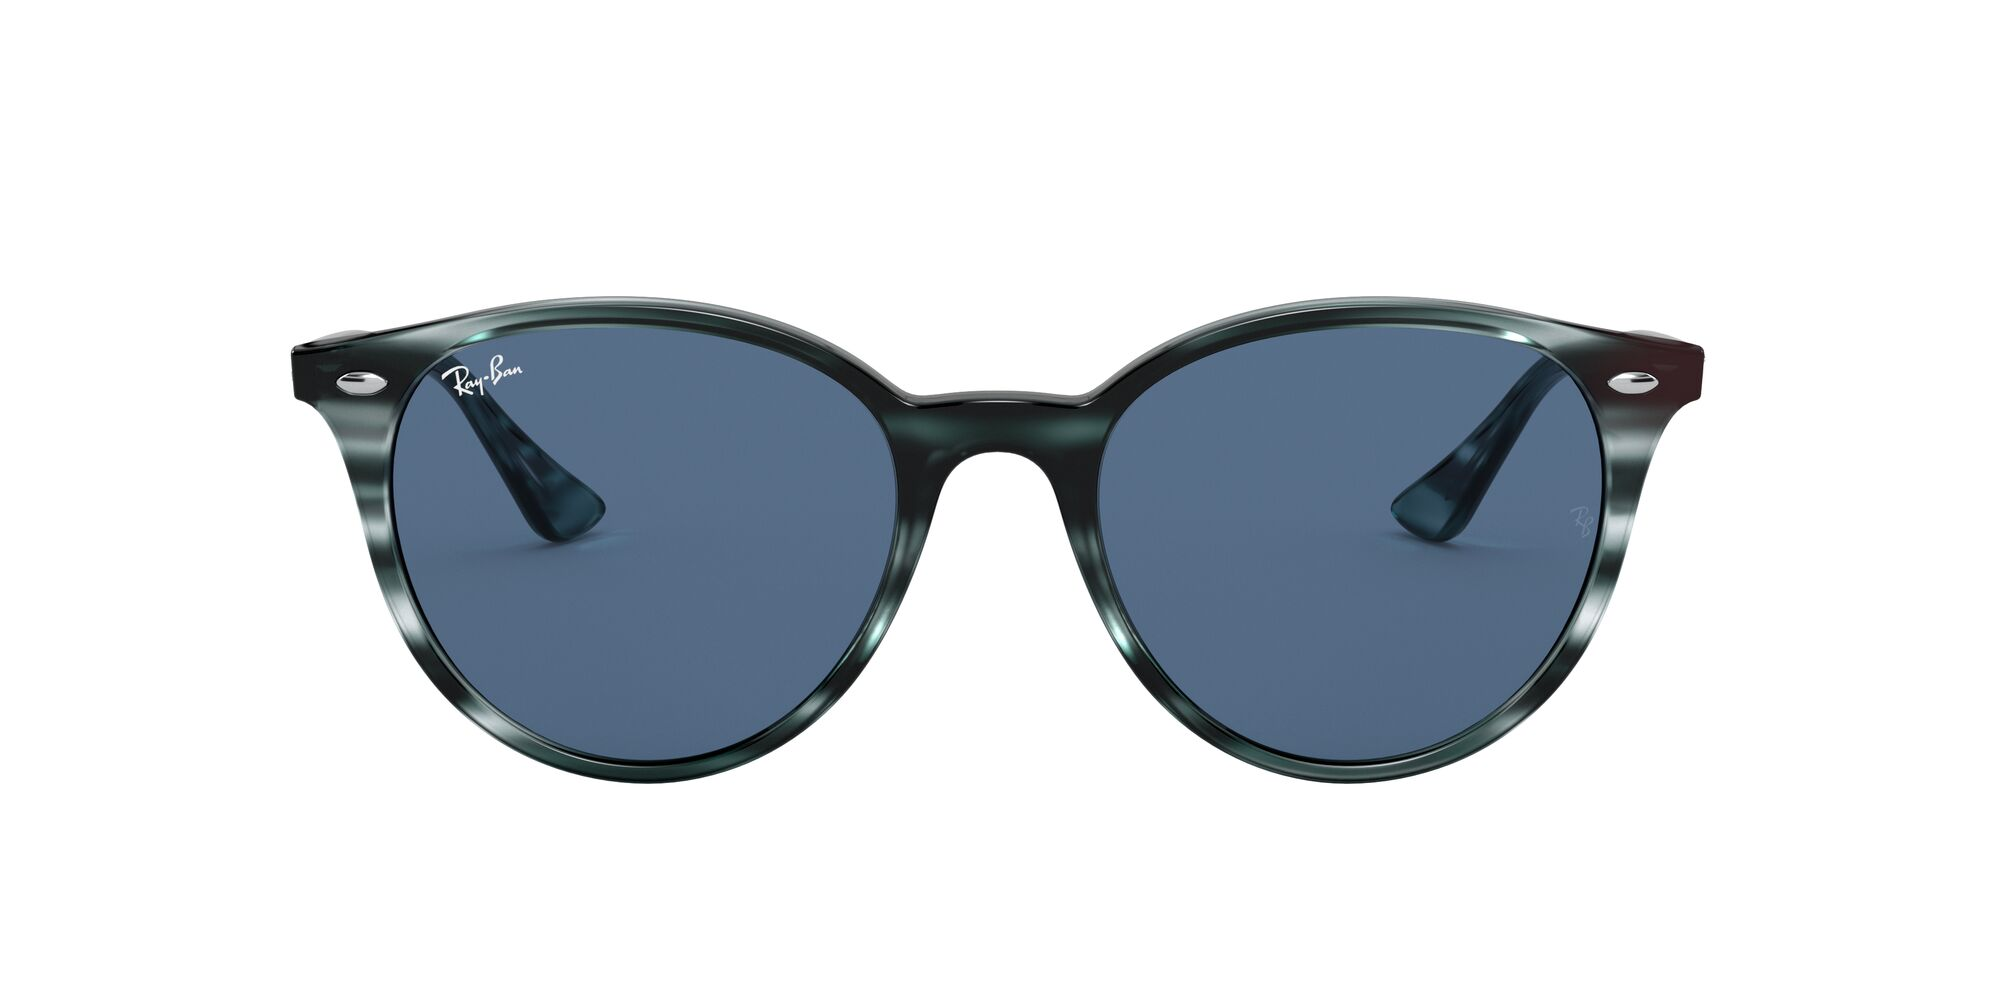 Front Ray-Ban Ray-Ban 0RB4305 643280 53/19 Blauw, Bruin/Blauw